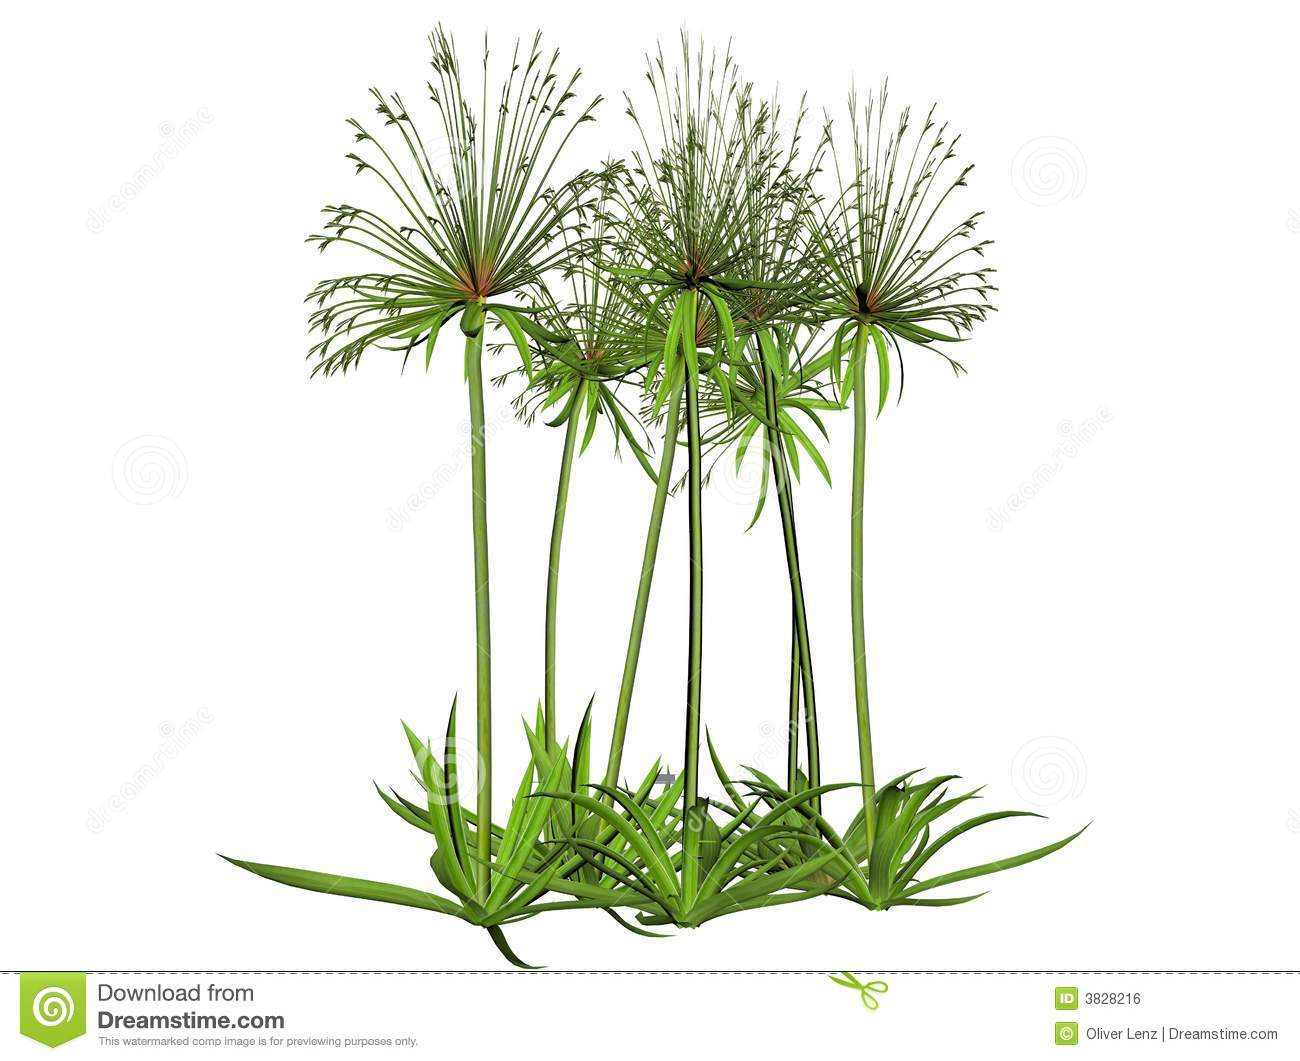 Papyrus Plant Royalty Free Stock Image - Image: 3828216